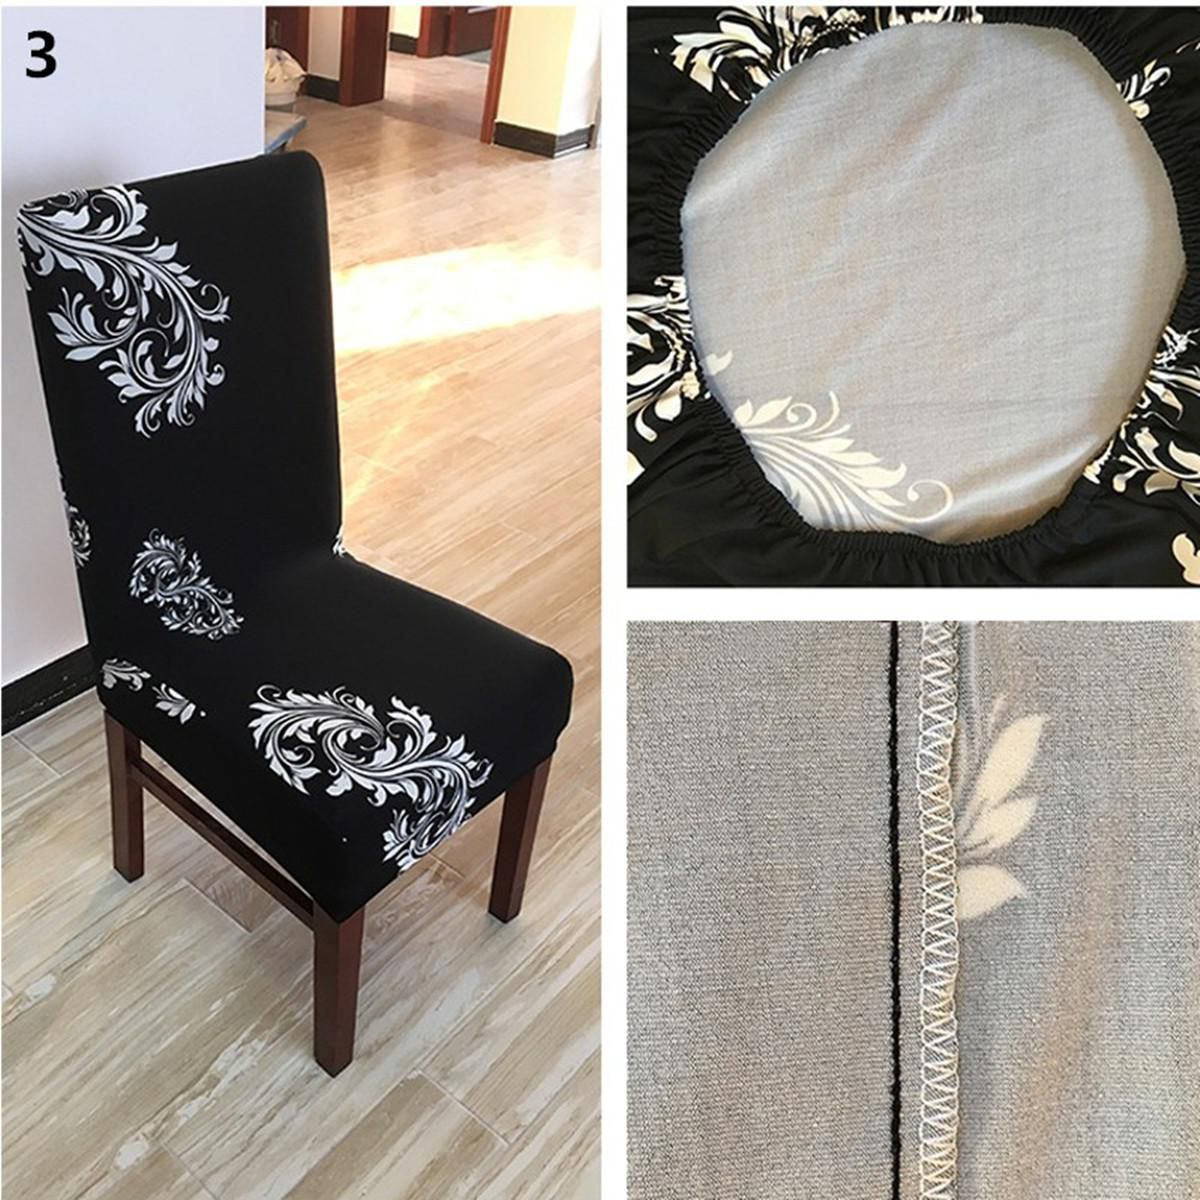 Buy 1 4pcs Seat Cover Kitchen Dining Bar Chair Covers Slipcovers Wedding Party Decor Online At Low Price In India Snapdeal